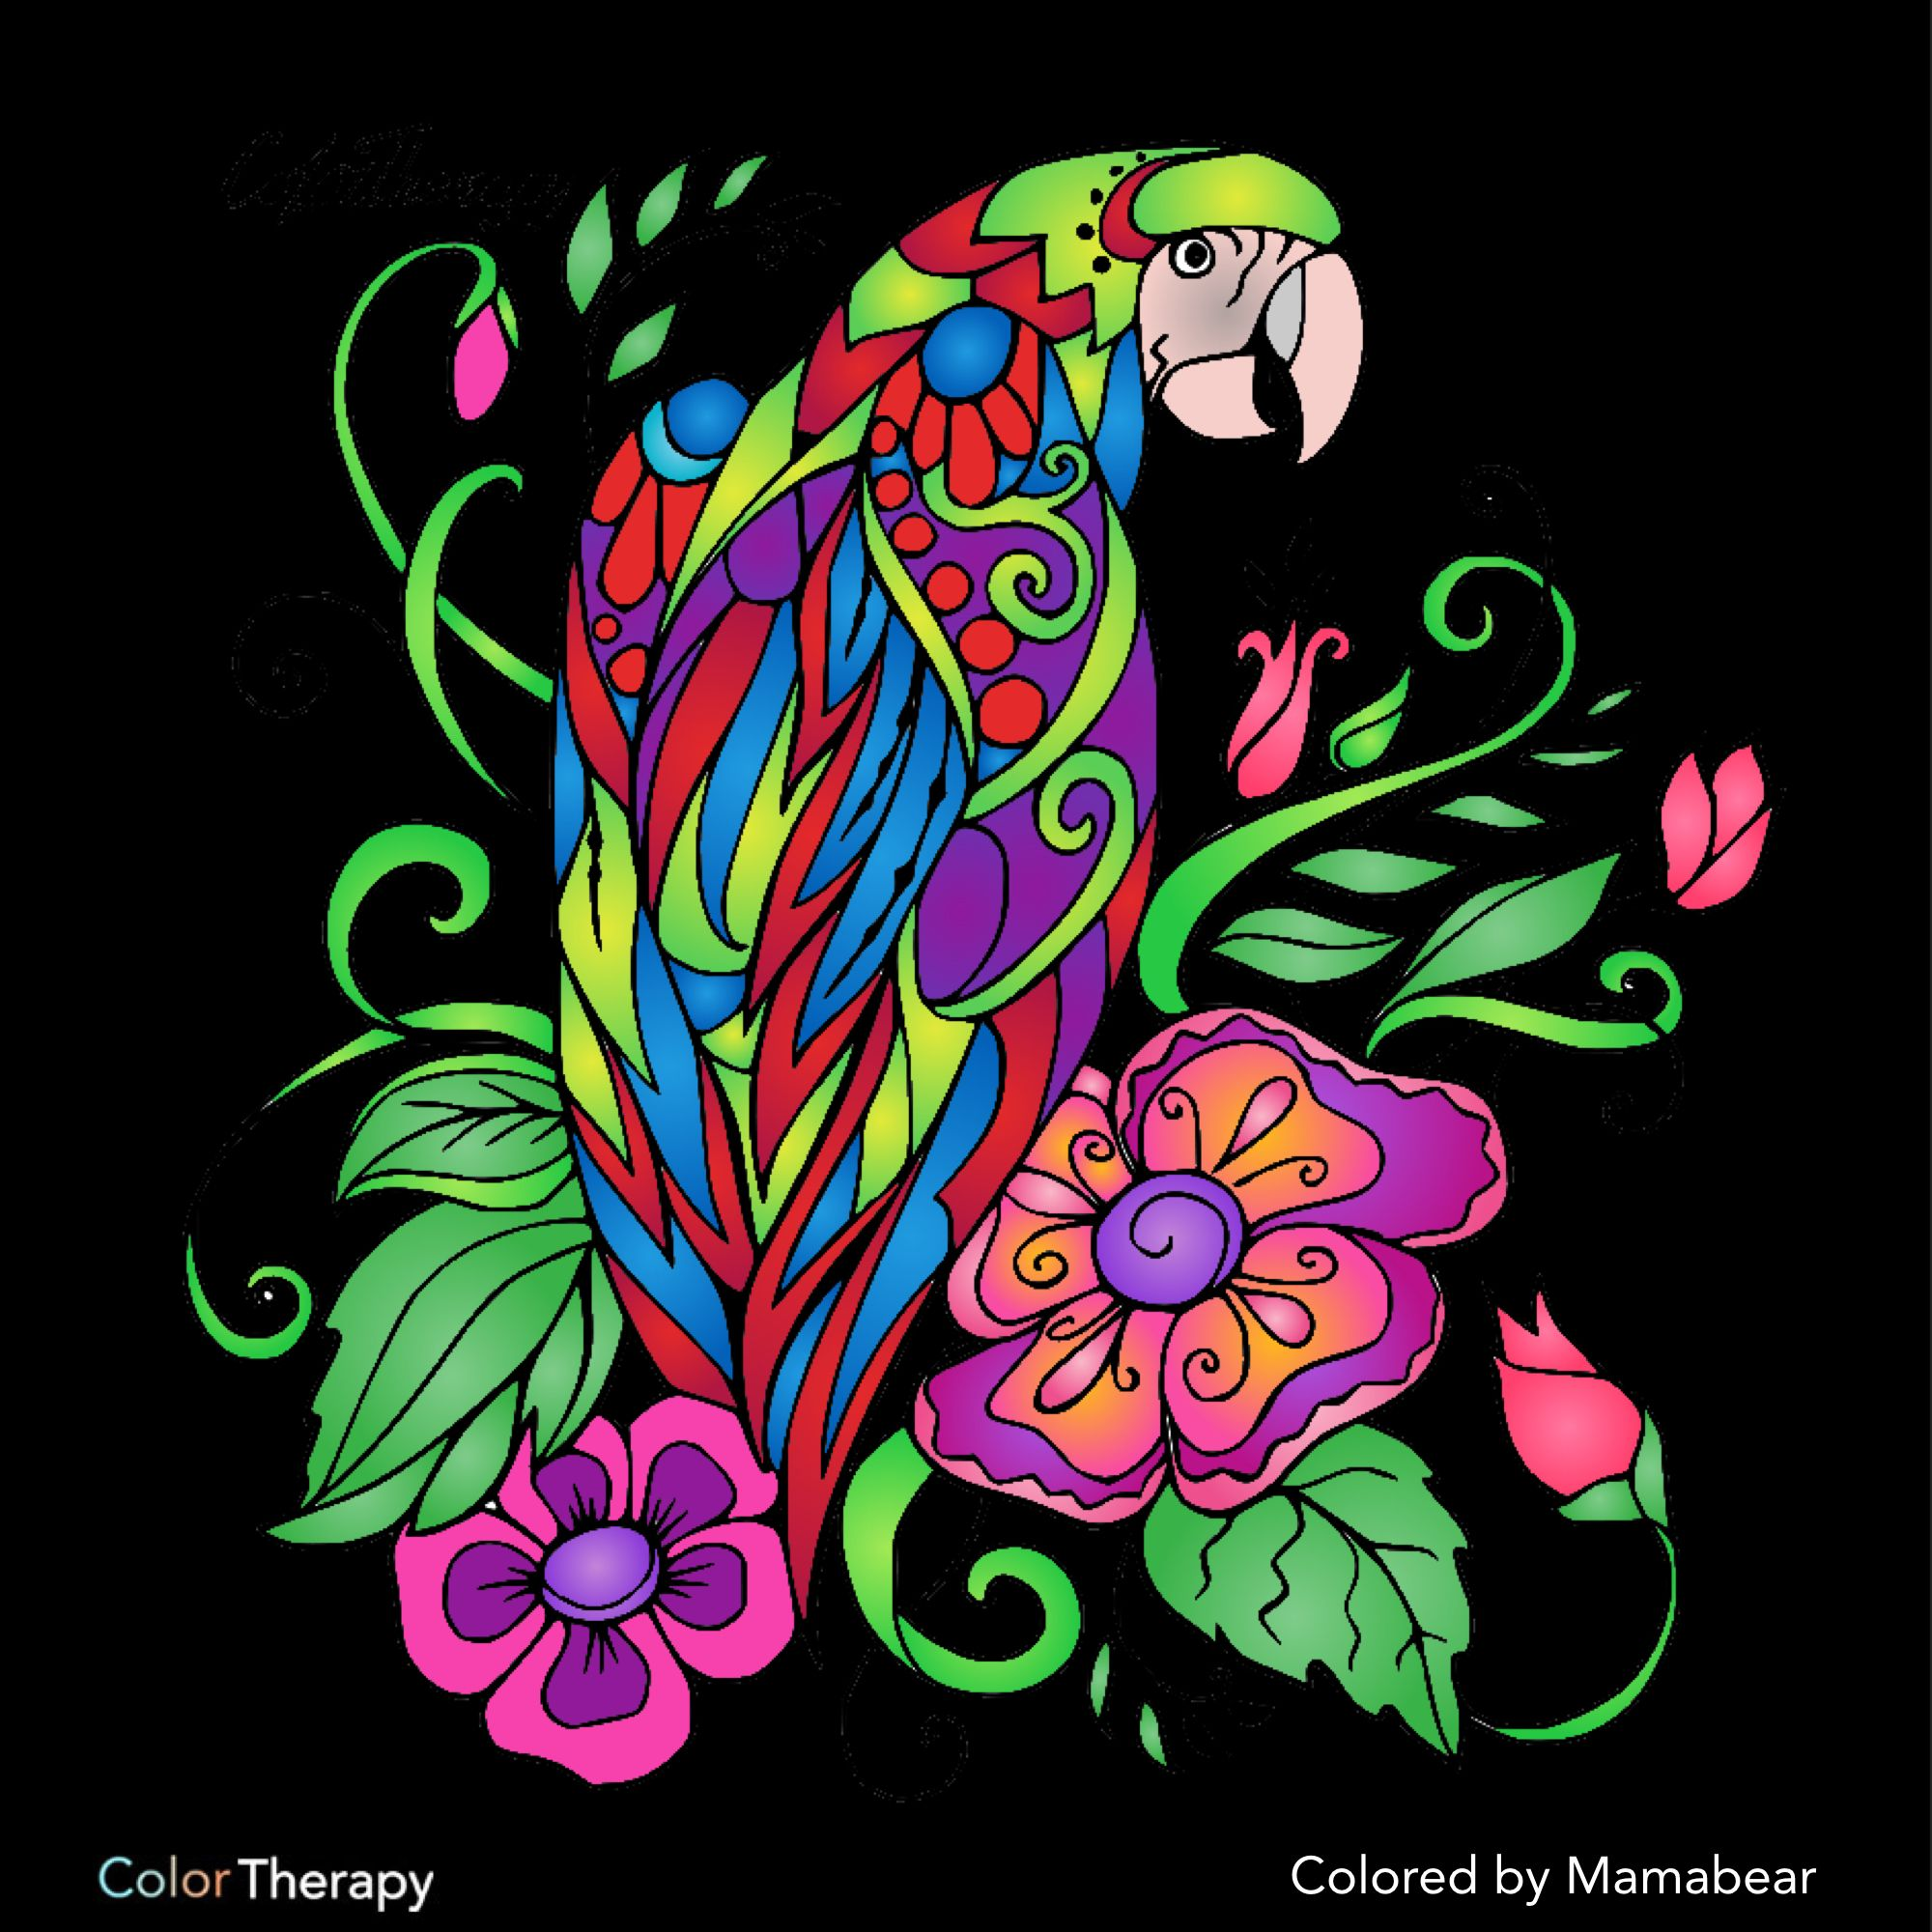 Color therapy anti stress coloring book app - I Colored This Myself Using Color Therapy App It Was So Fun And Relaxing